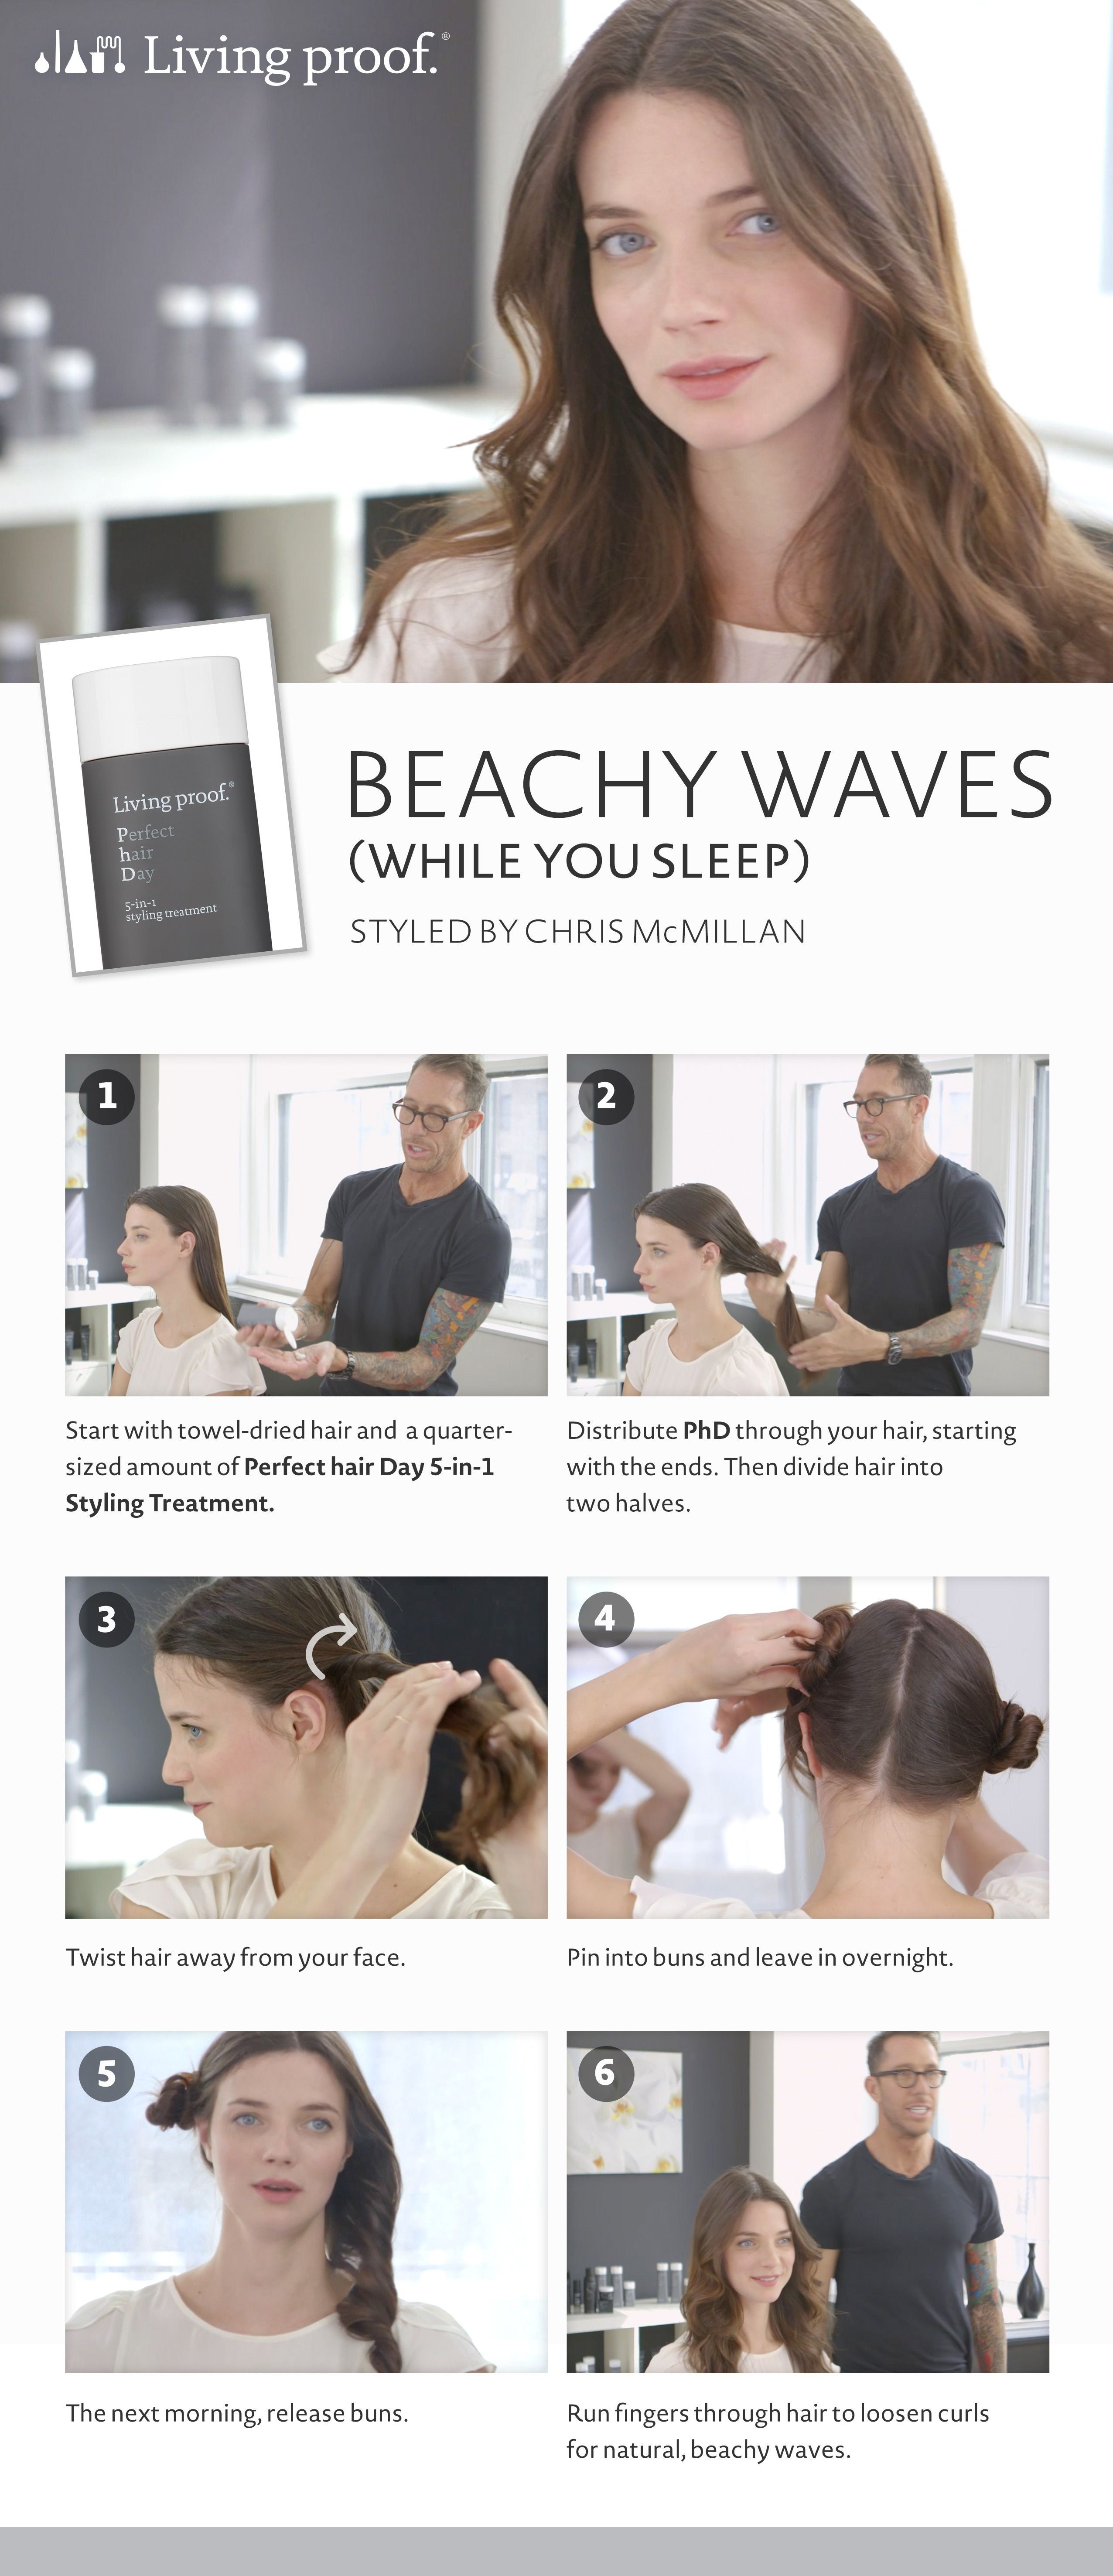 Here S The Secret To Styling Your Hair In Natural Beachy Waves While You Sleep Sephora Longhair Bea Wavy Hair Overnight Perfect Hair Day Curly Hair Styles